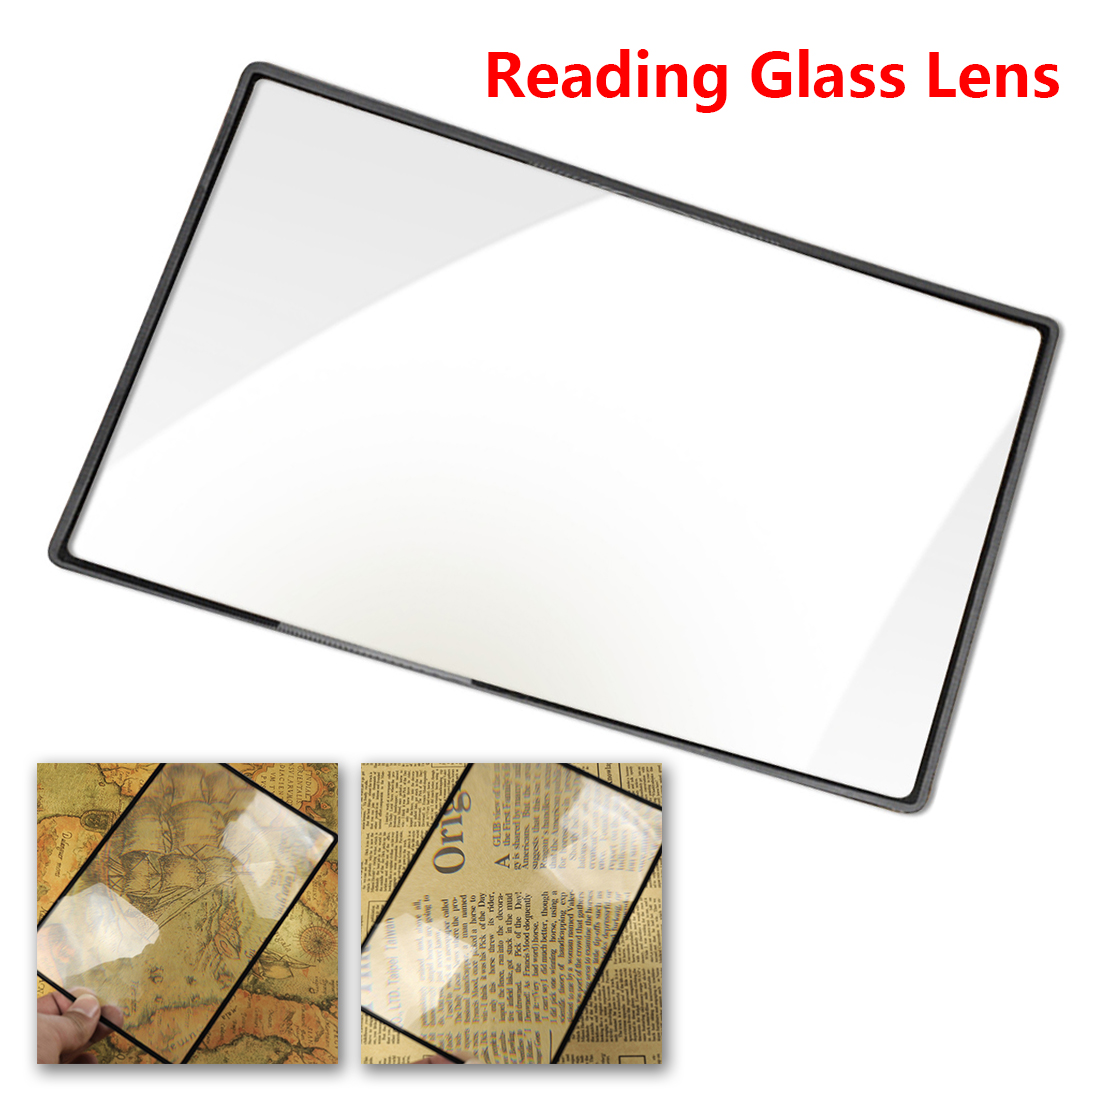 Reading Glass Lens 180X120mm Convinient A5 Flat PVC Magnifier Sheet X3 Book Page Magnification Magnifying kudos x3 black page 8